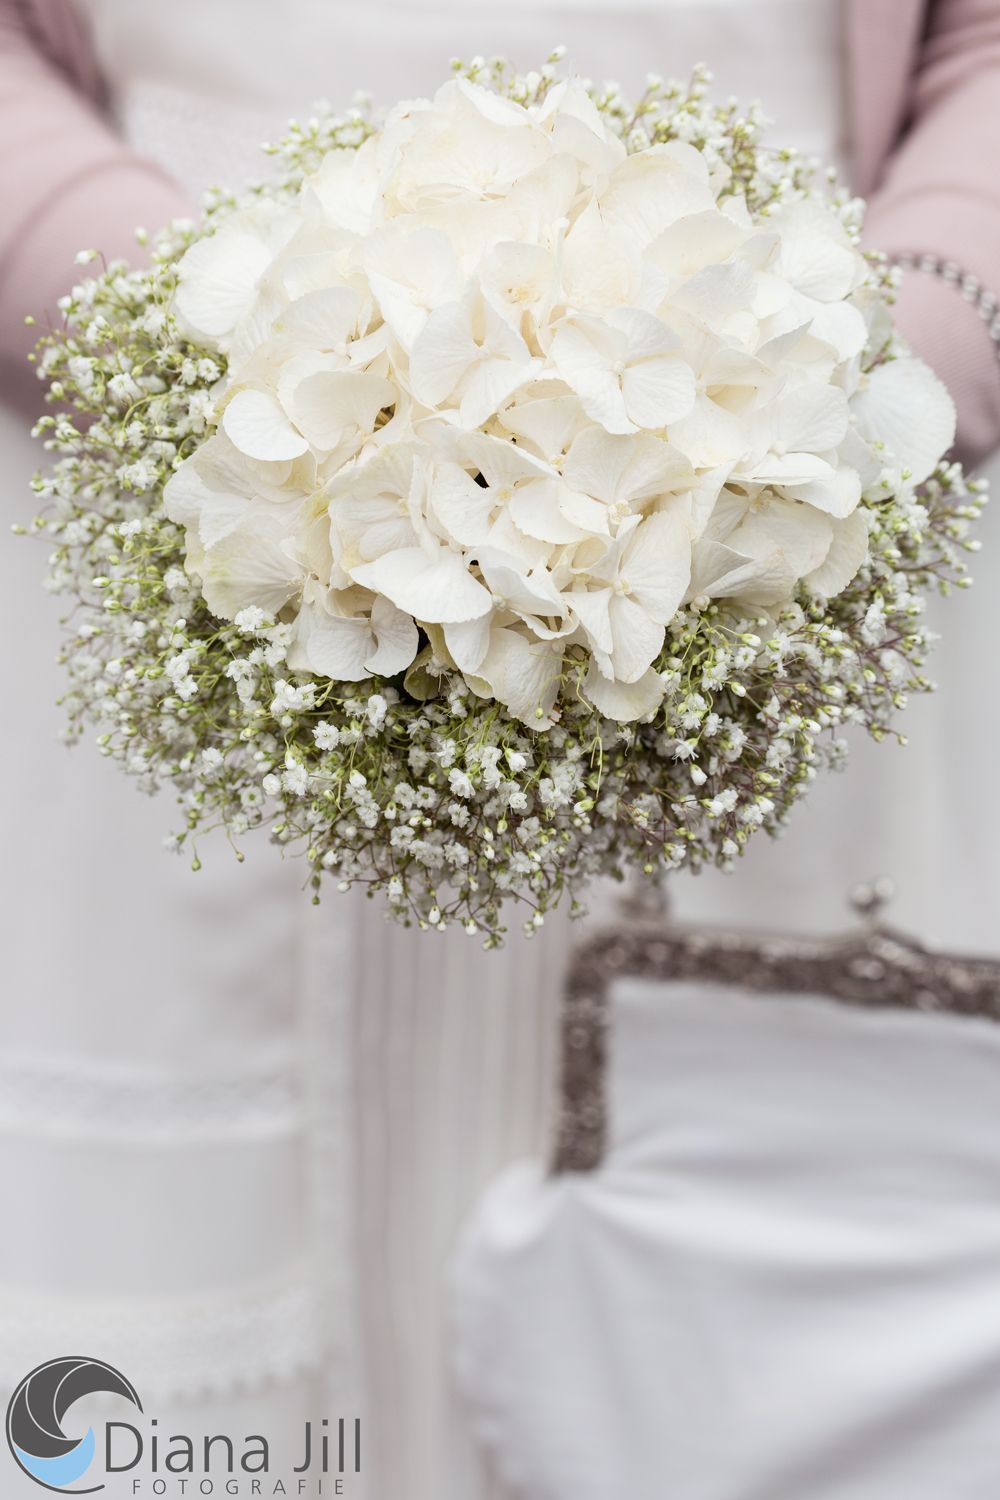 Bridal bouquet: September #fallbridalbouquets